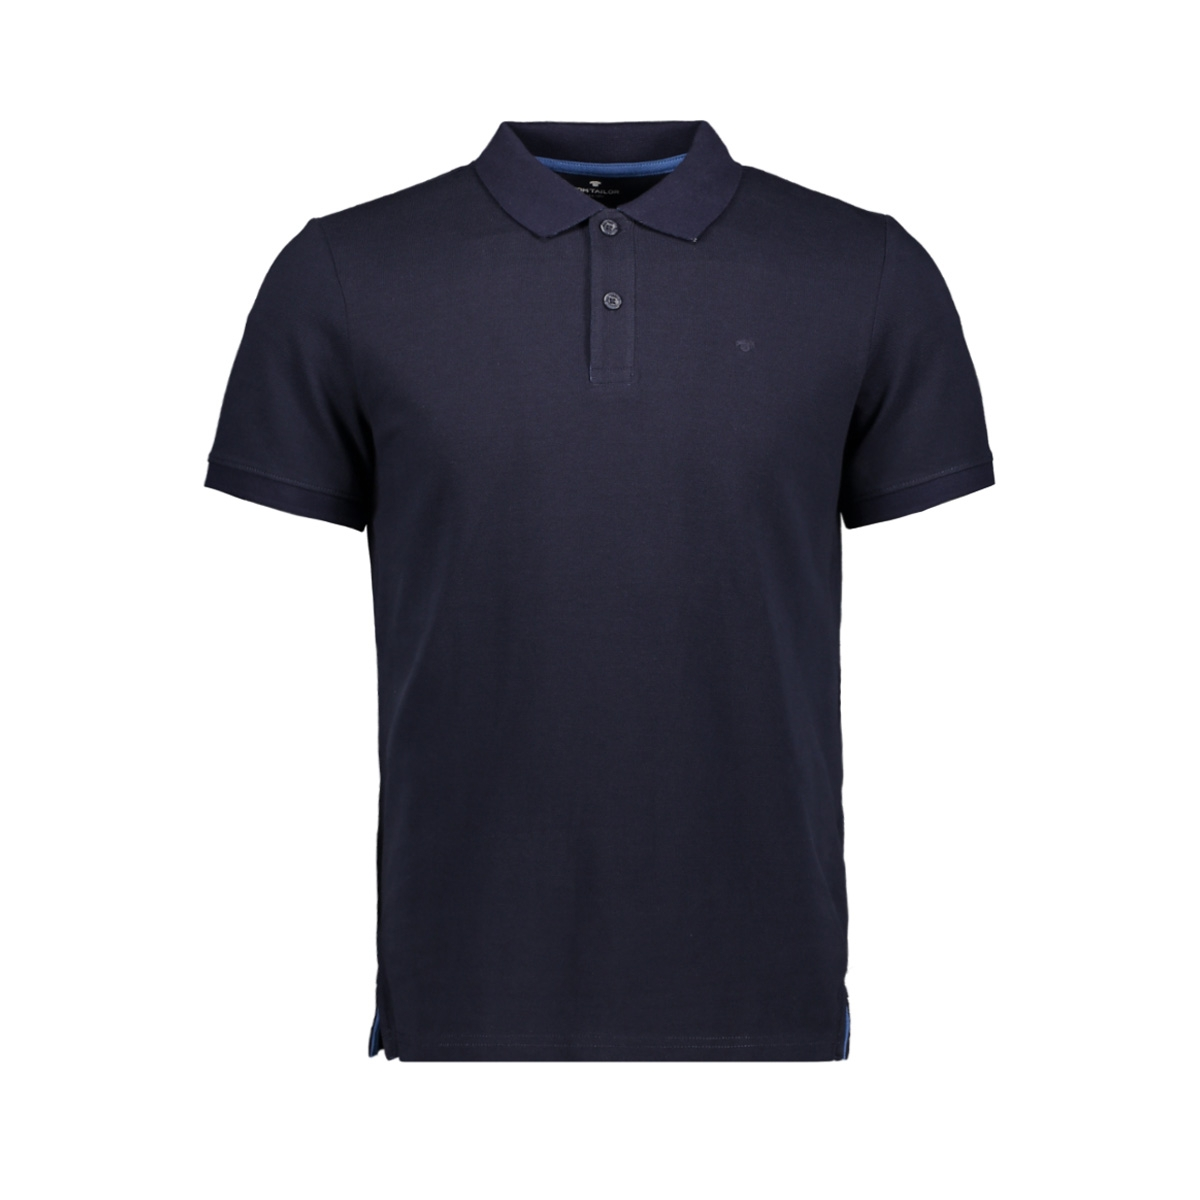 1008650xx10 tom tailor polo 10690